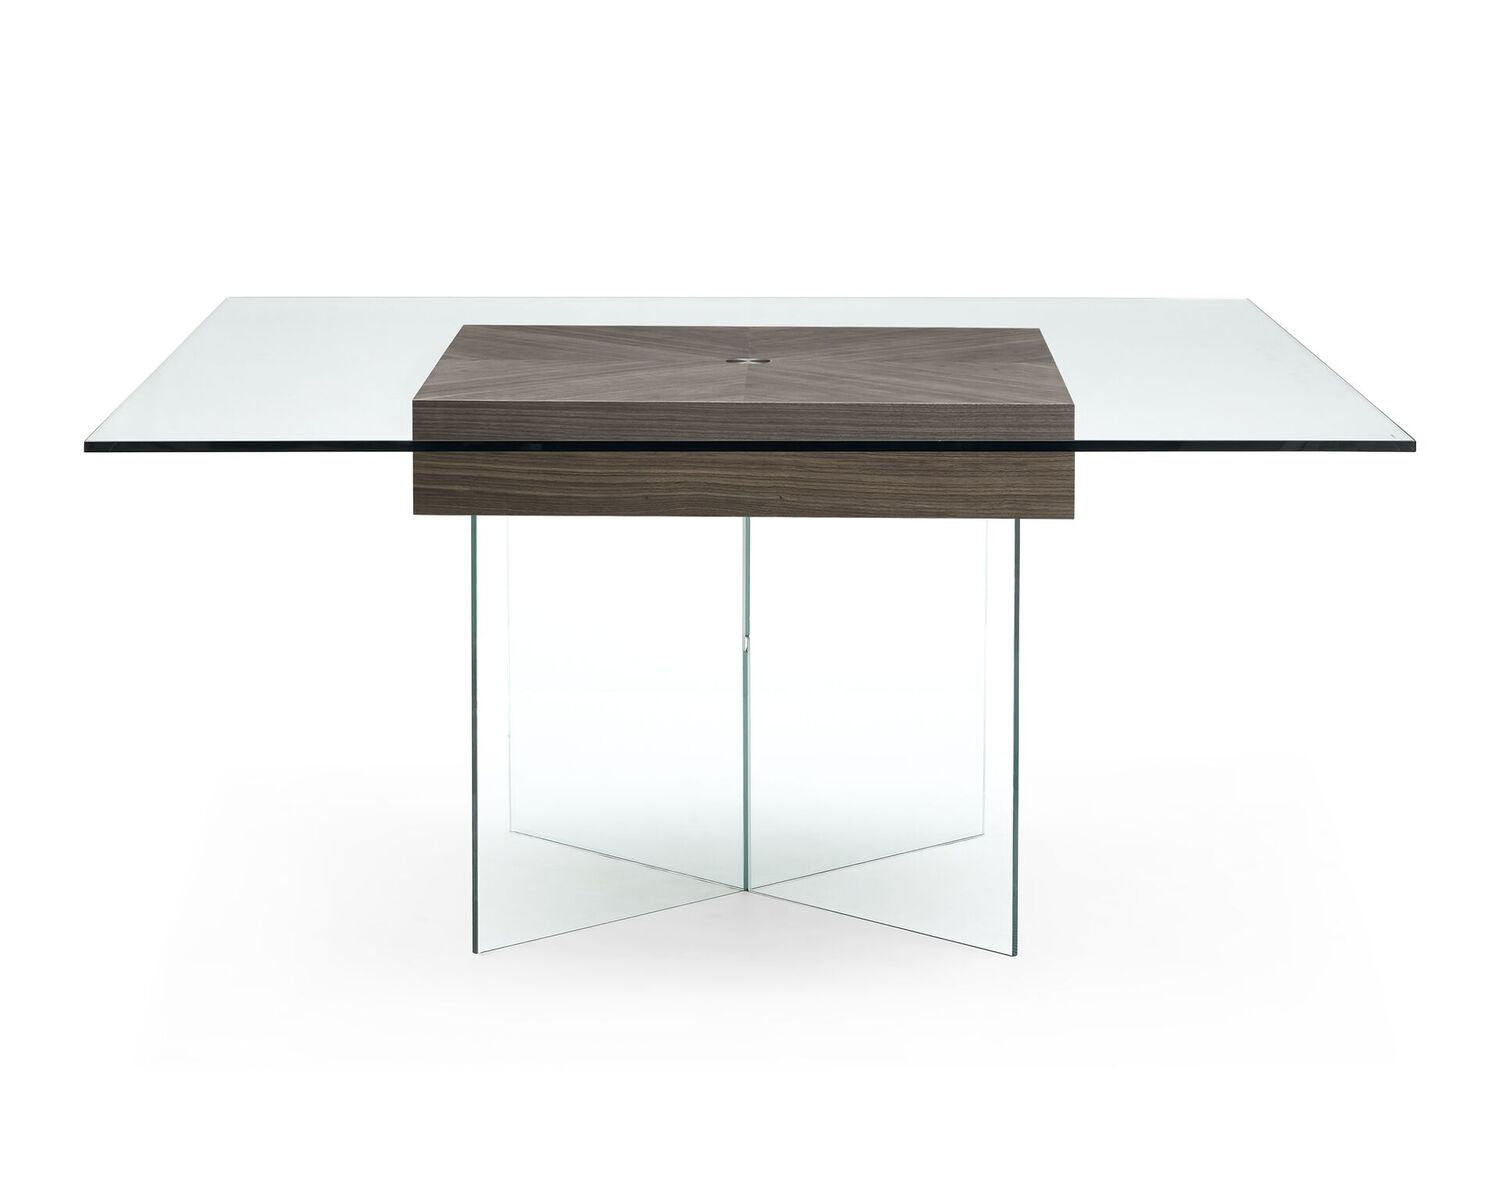 Square Clear Glass Meeting Table With Walnut Center OfficeDeskcom - Square meeting table